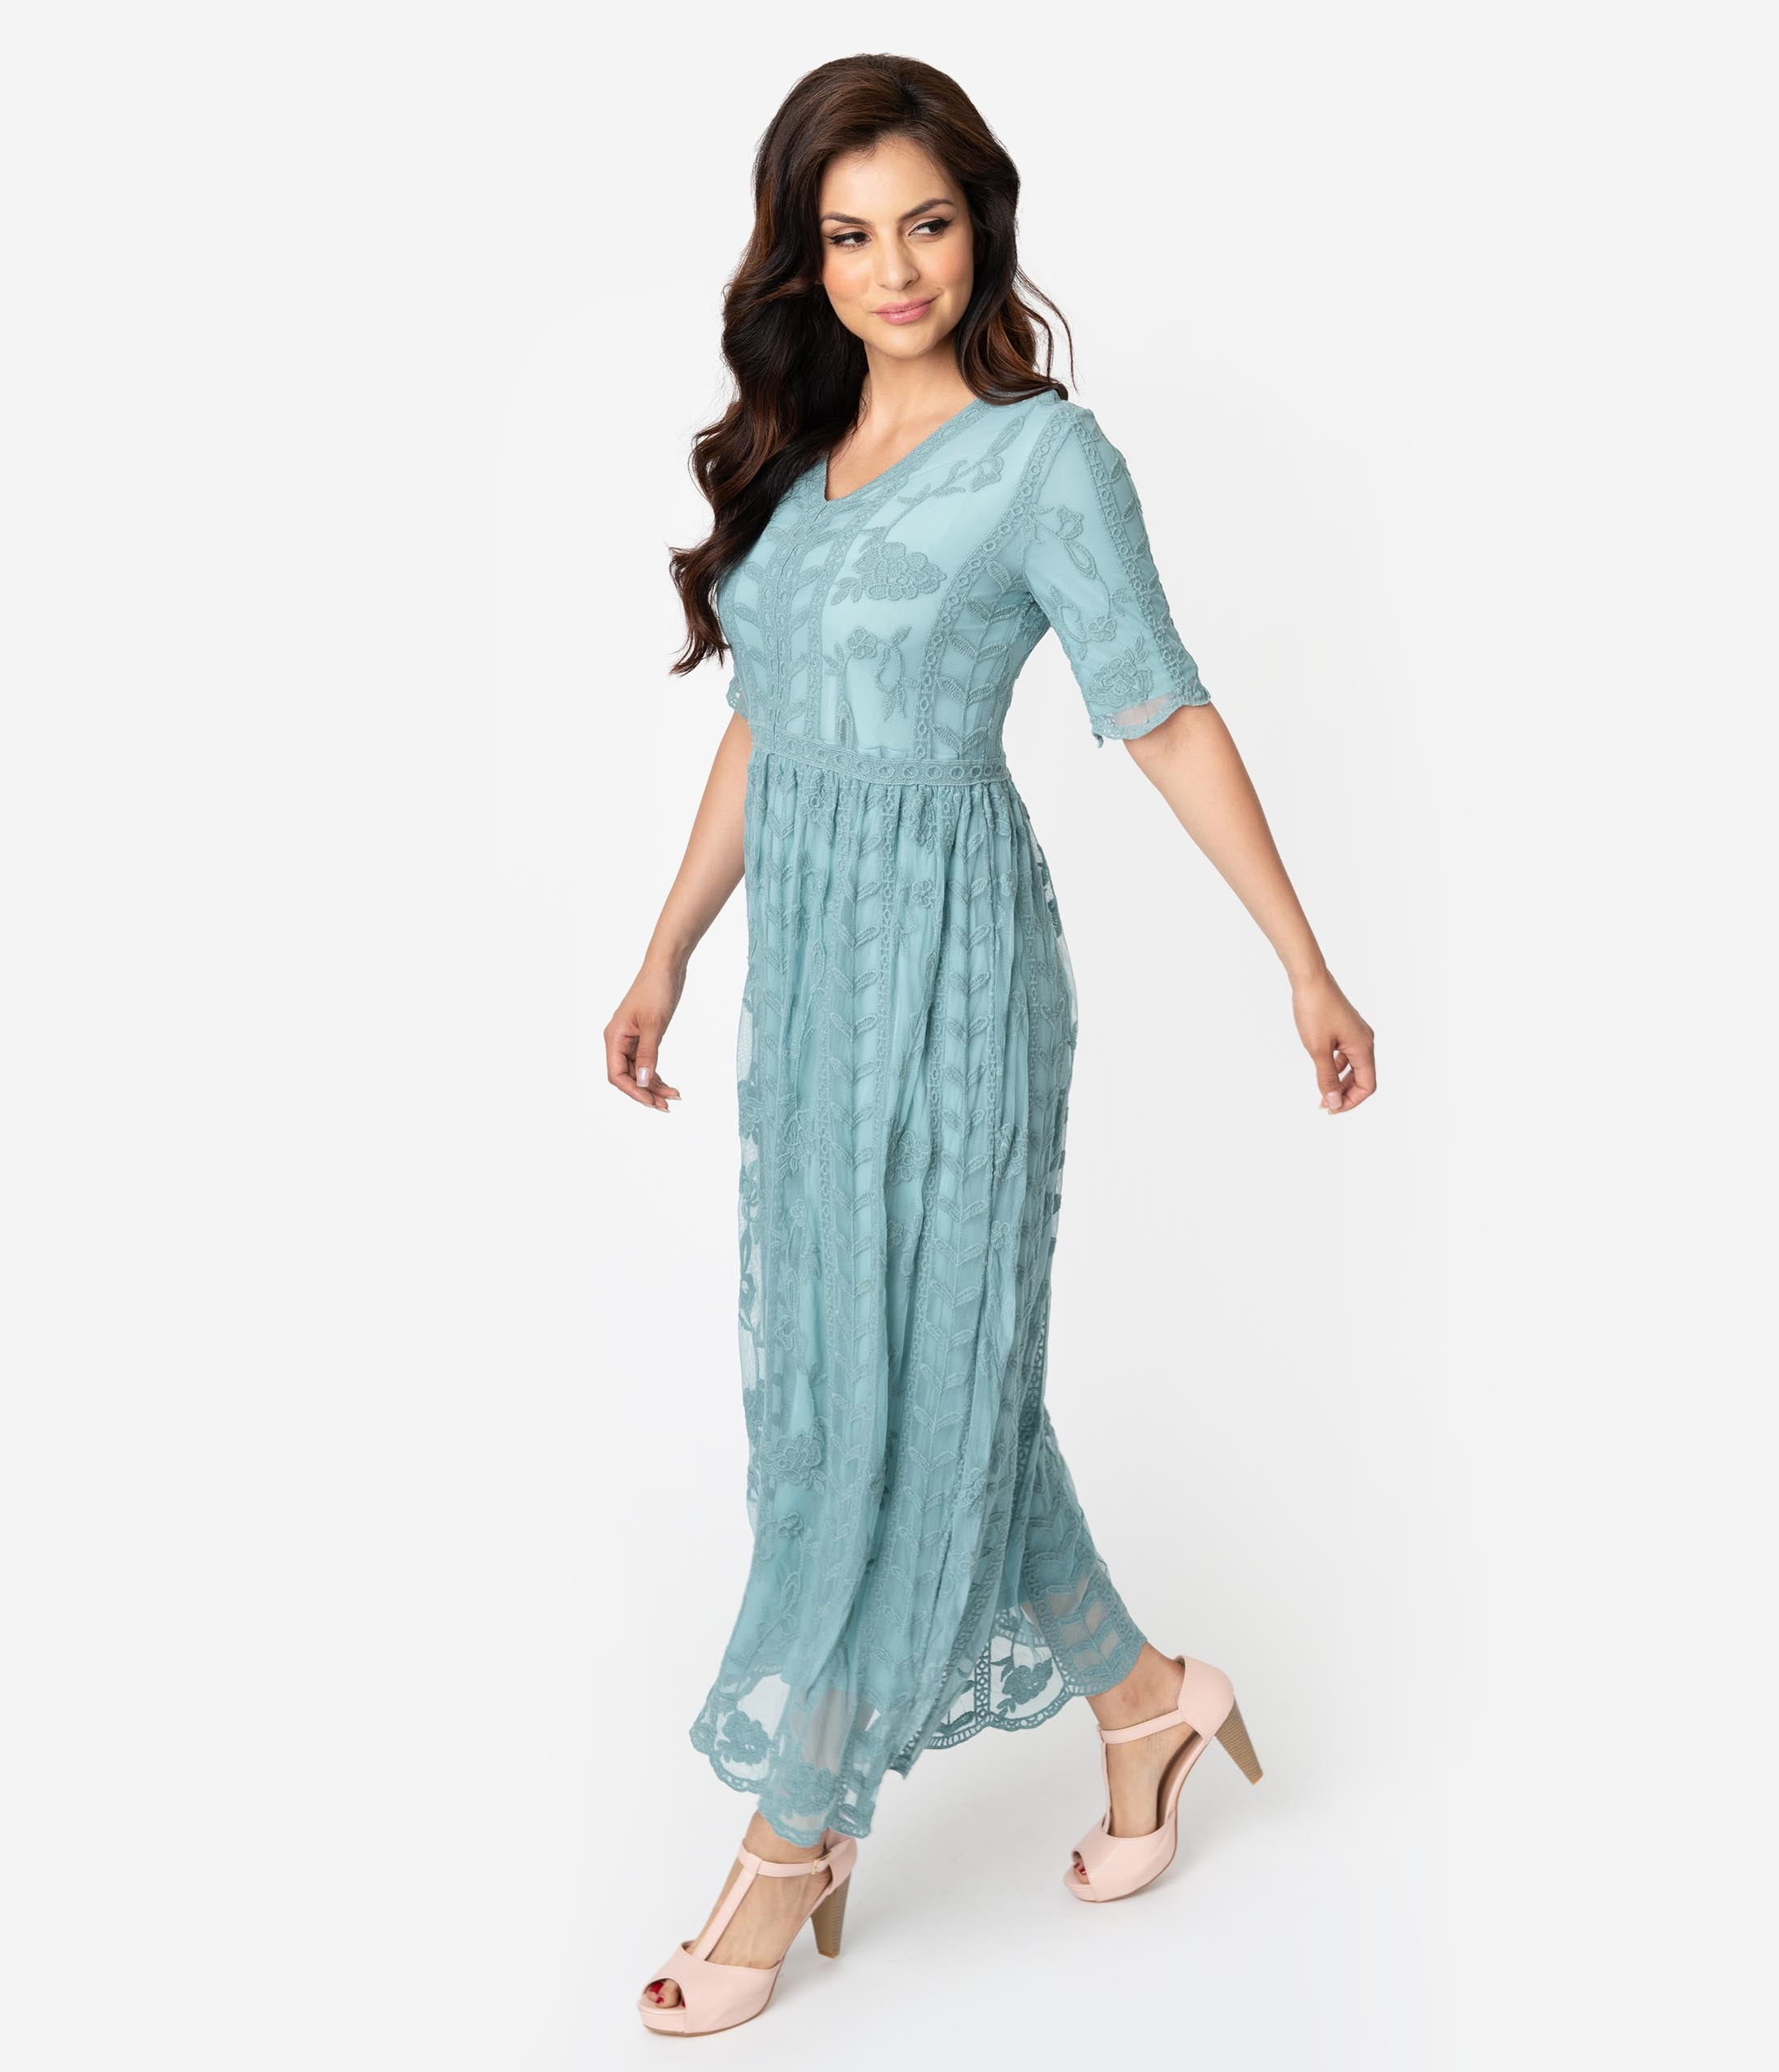 292e2a971 Maxi Dresses   70s-Style Long Dresses – Unique Vintage